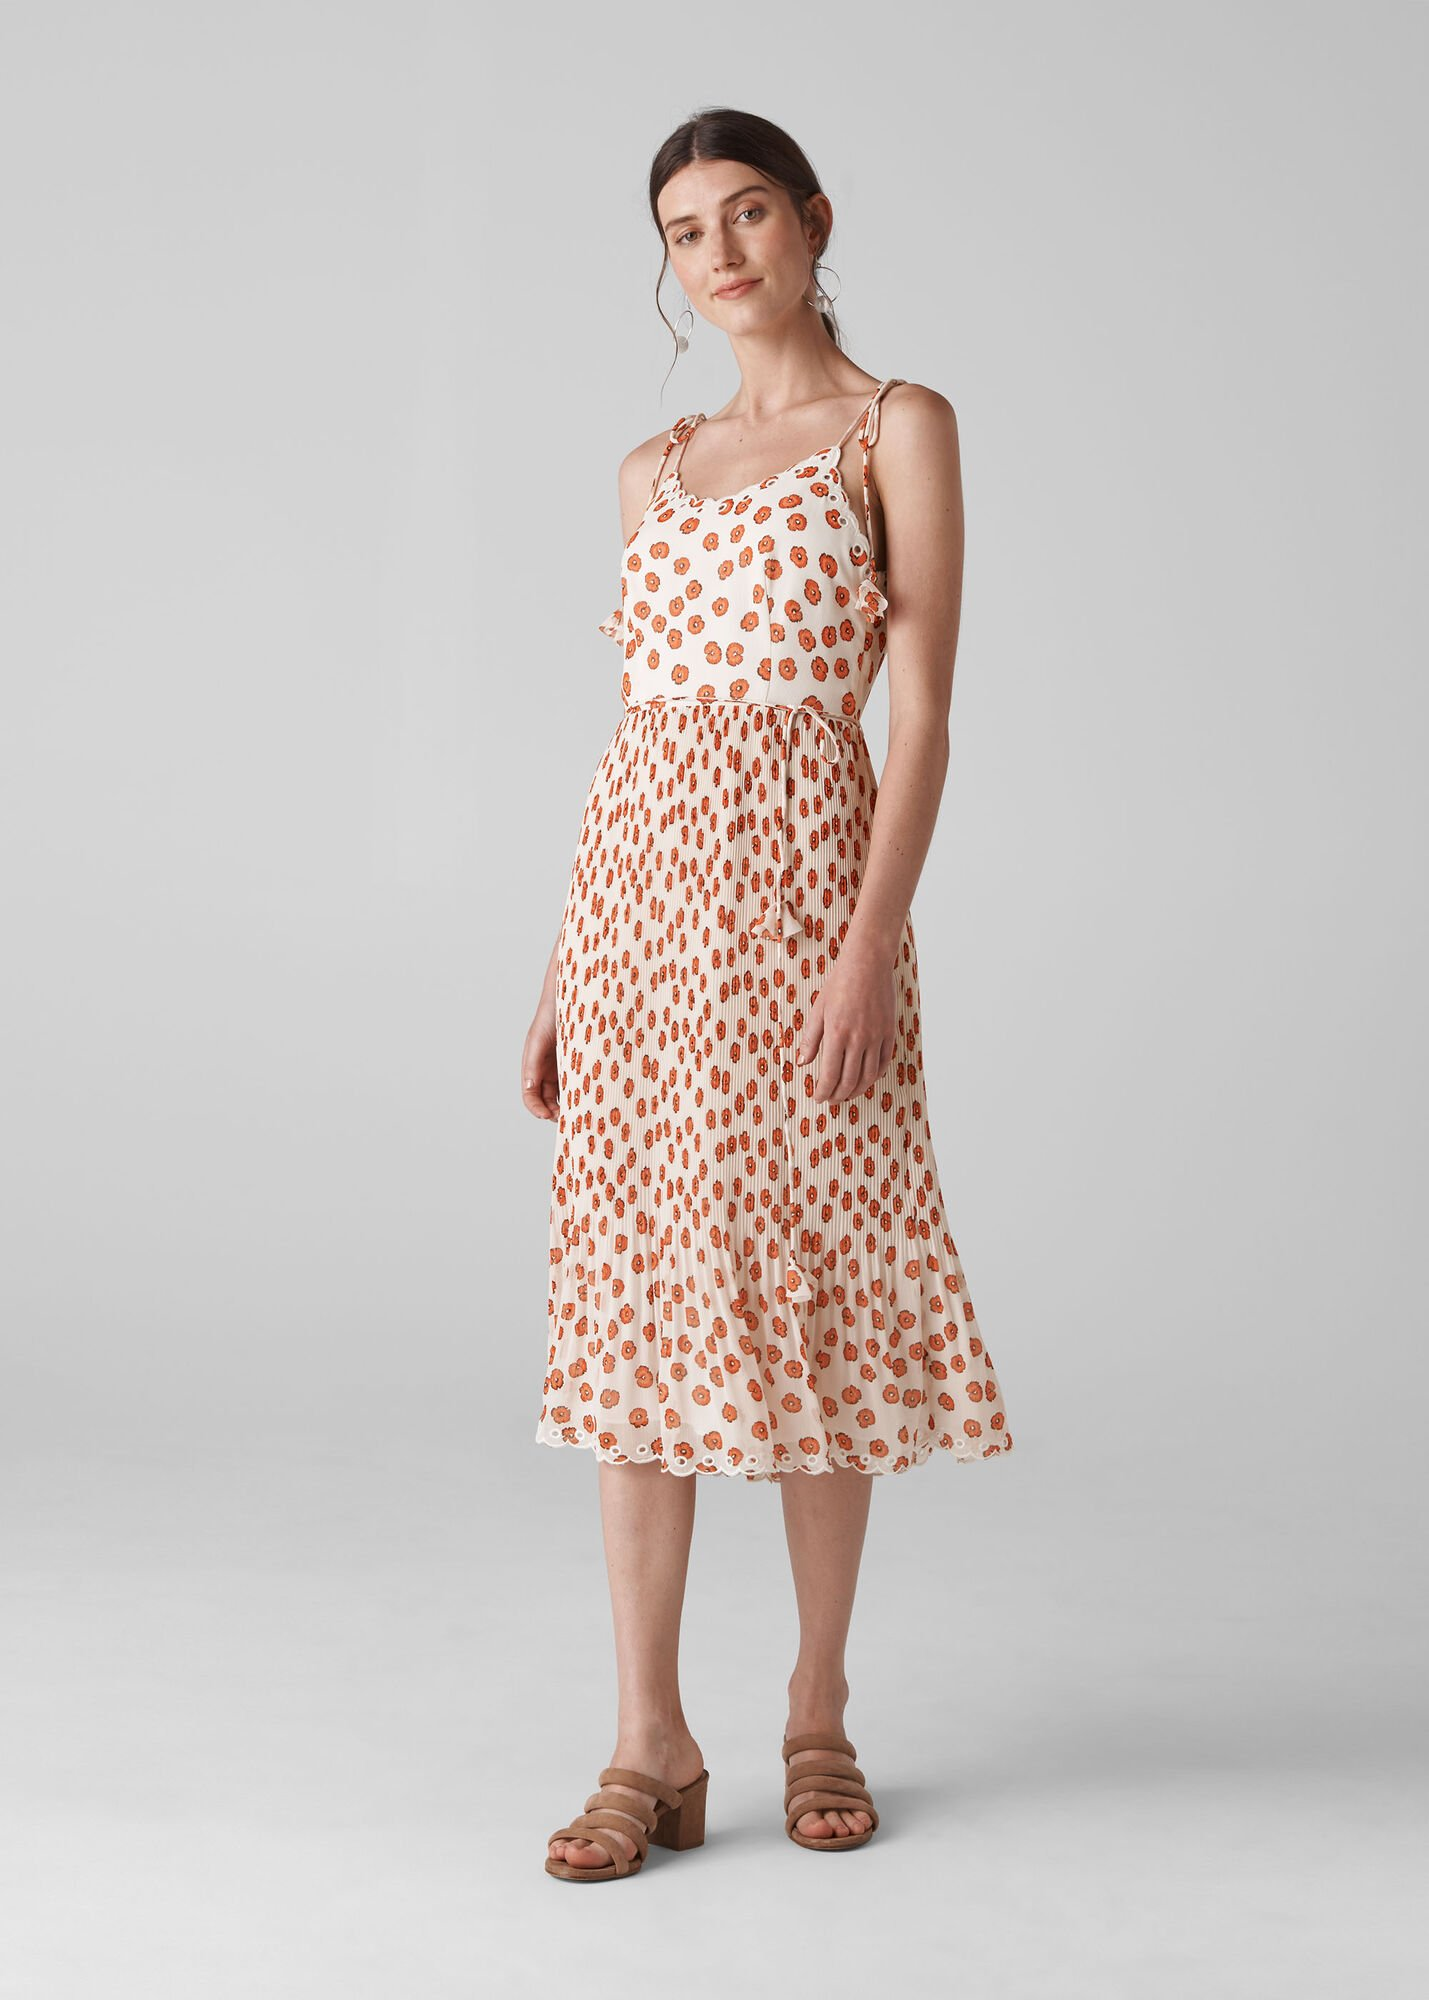 Salome Lenno Print Dress